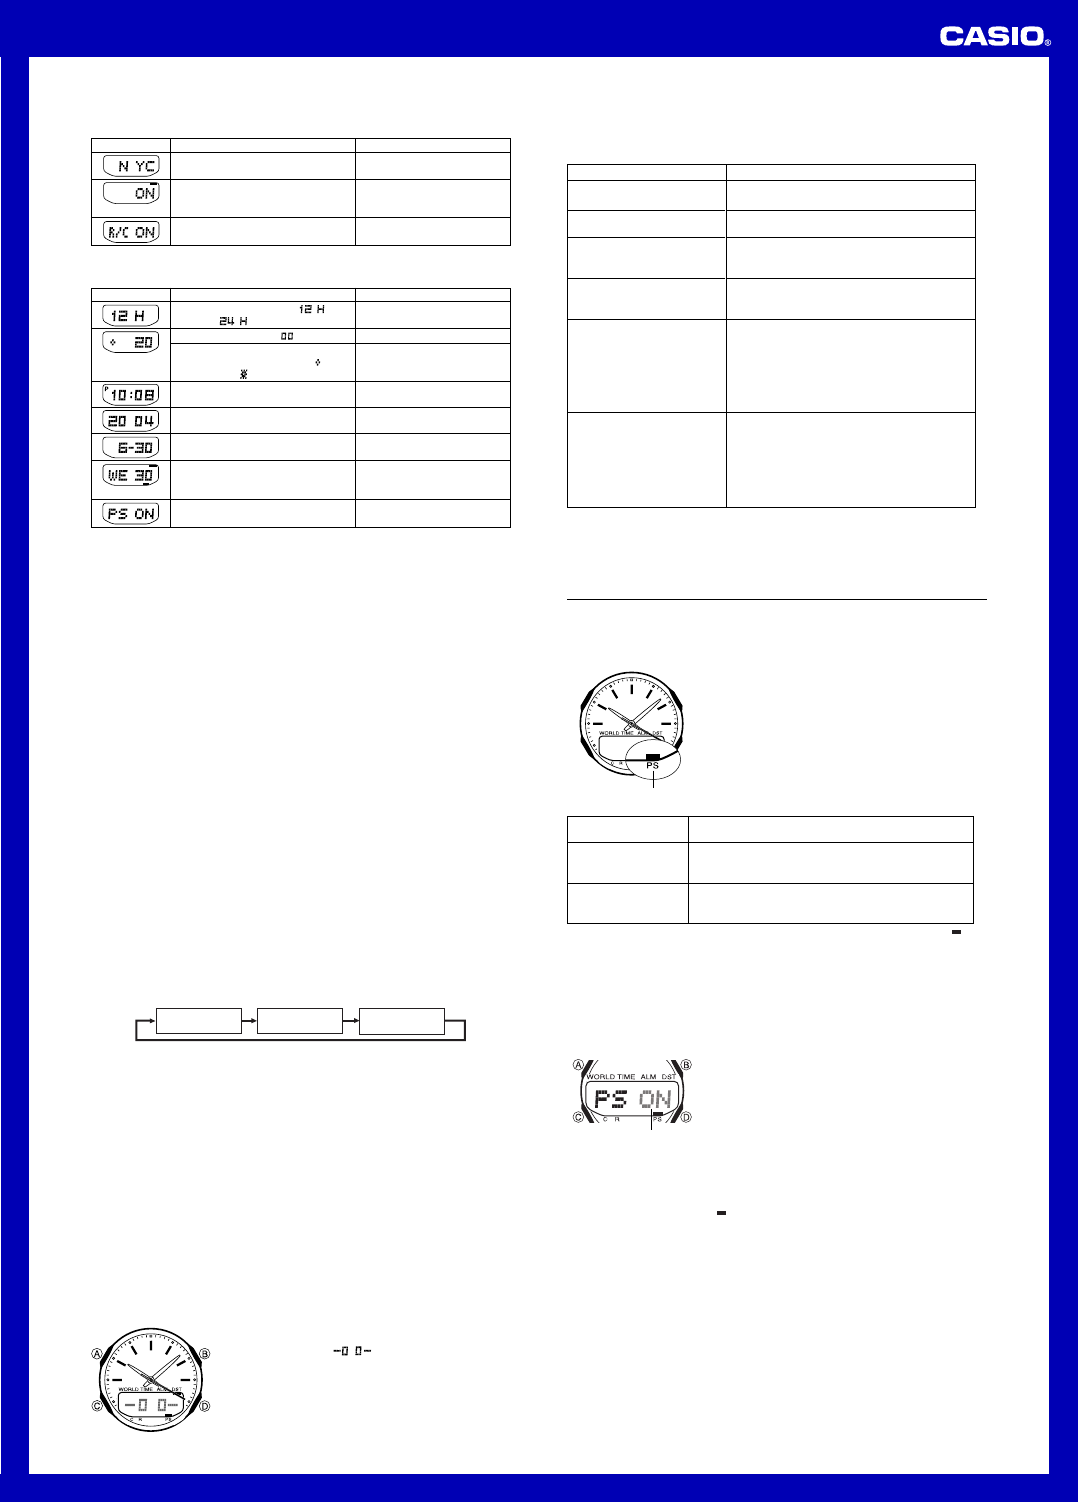 page 5 of casio watch 5052 user guide manualsonline com rh fitness manualsonline com casio wave ceptor 5052 manual pdf casio wave ceptor 5052 user manual